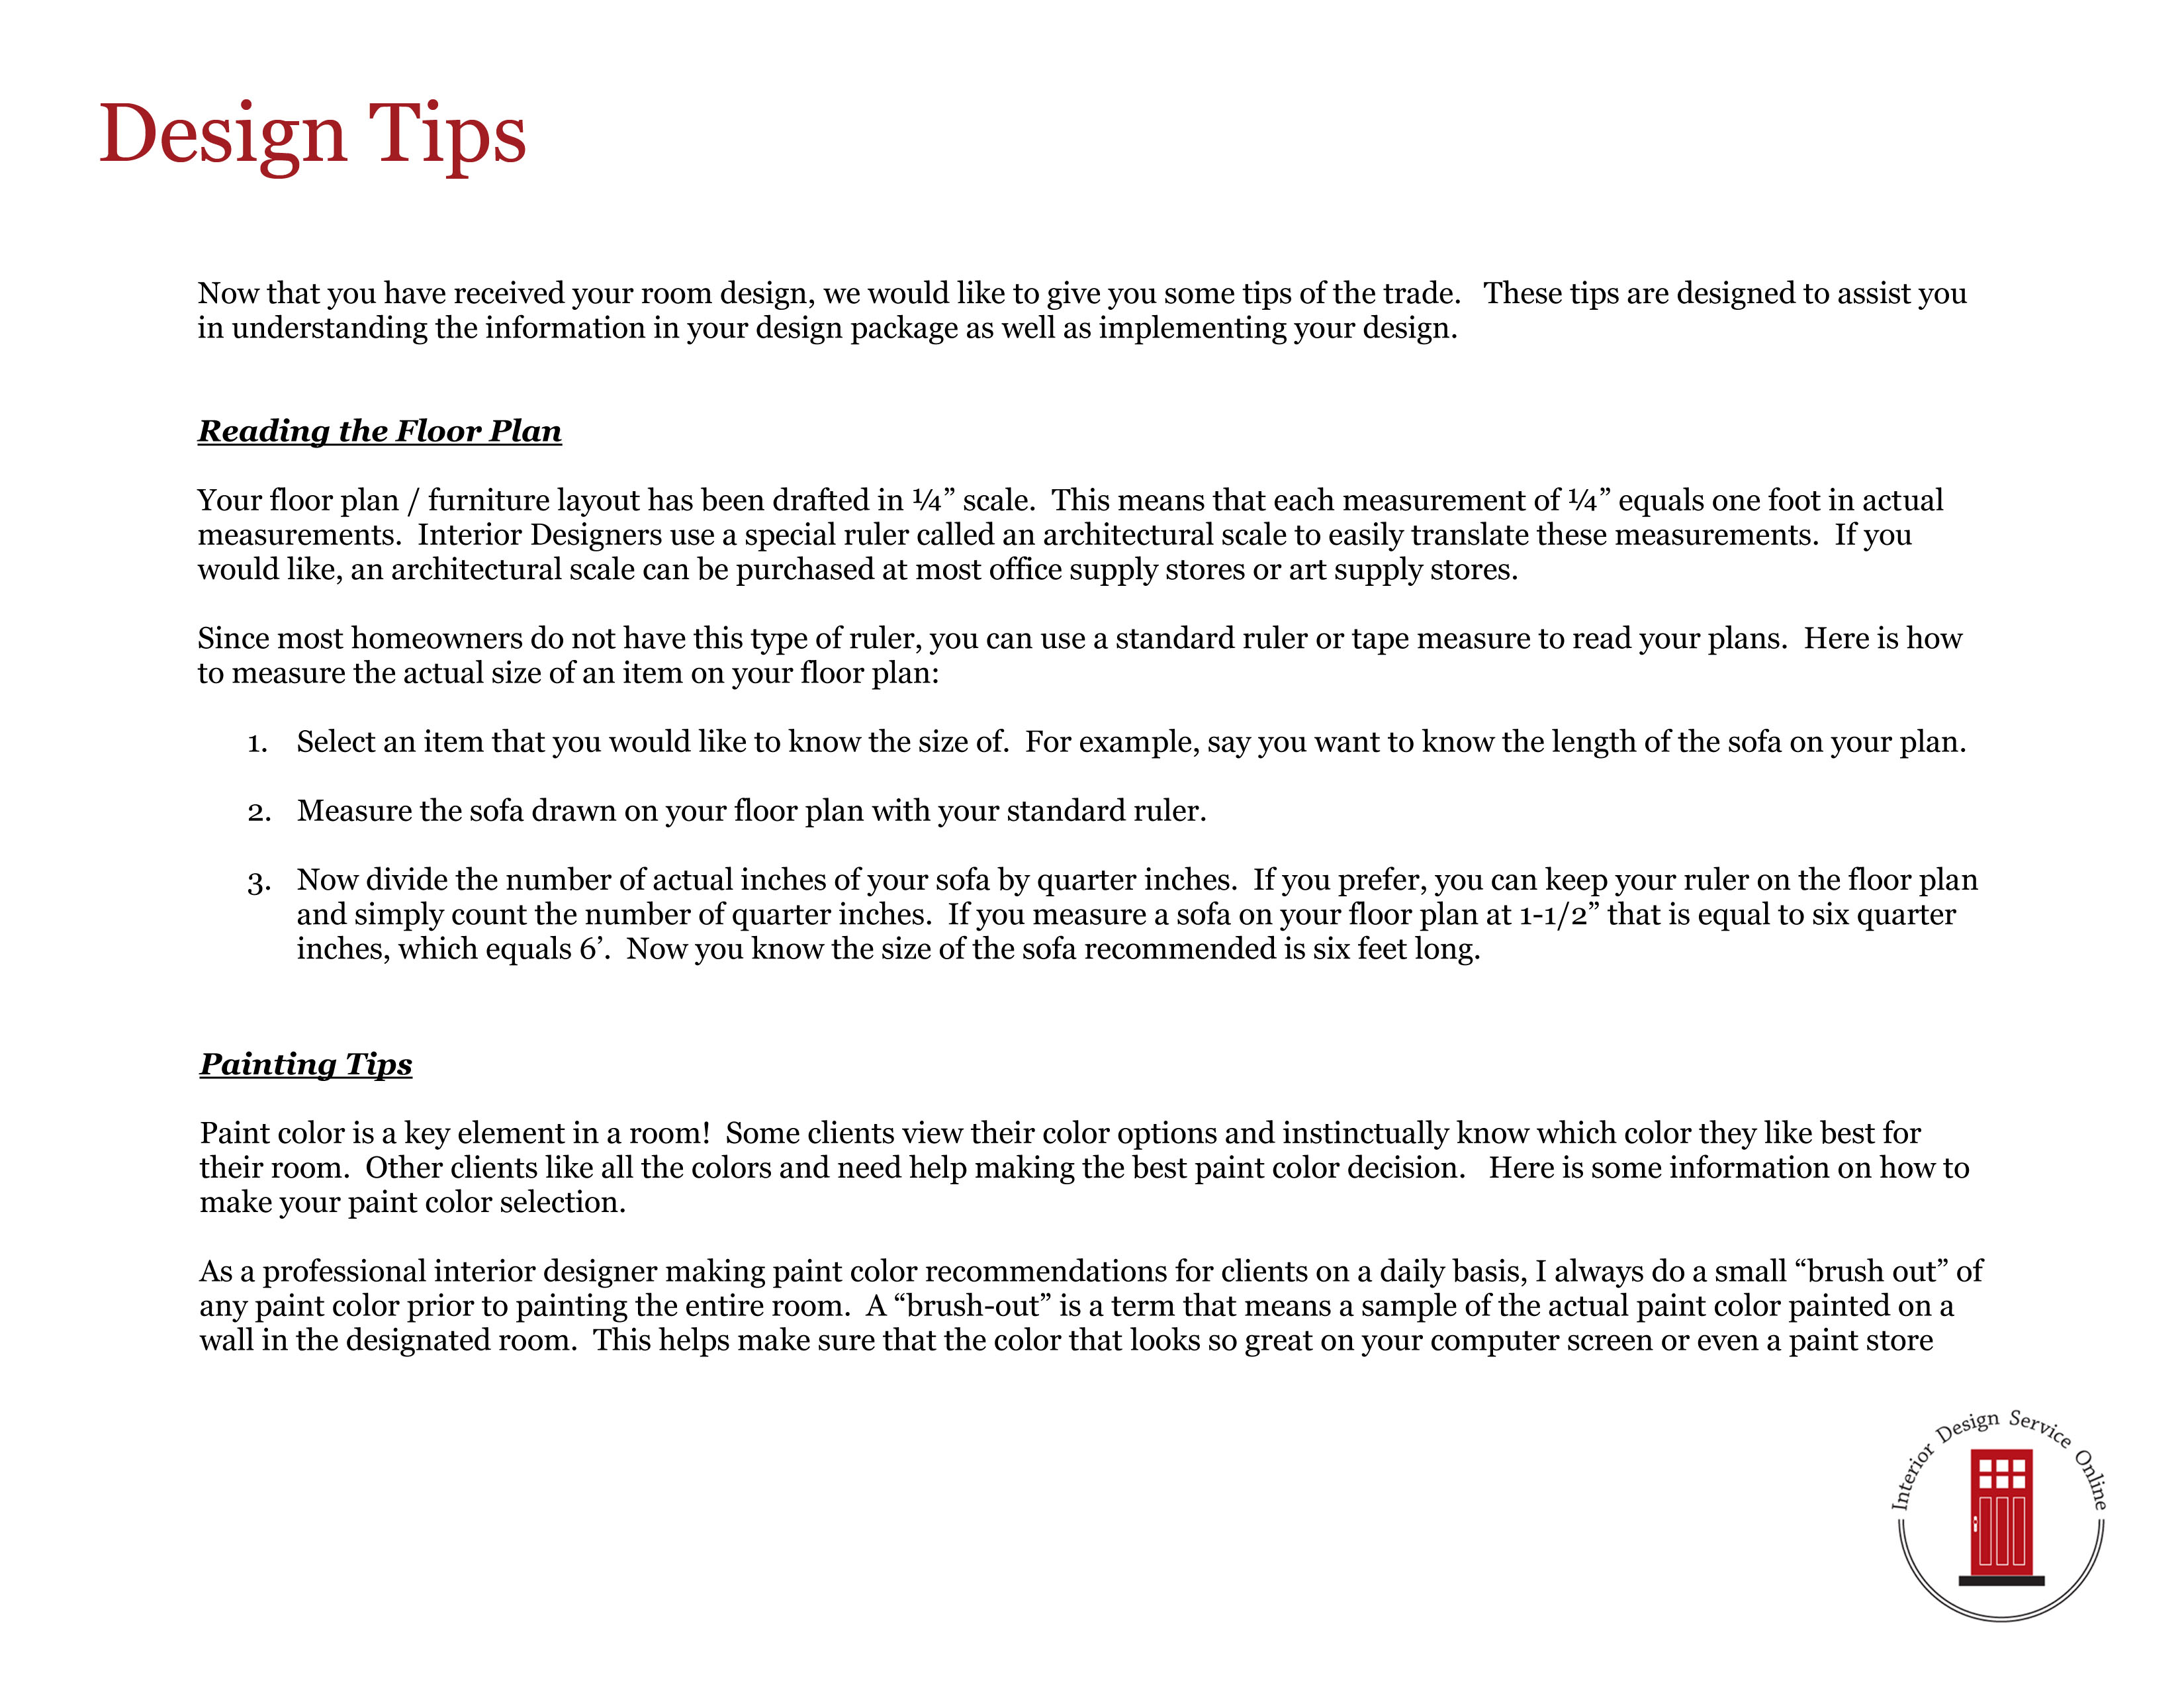 Design Tips These Help To Answer Questions That May Arise During The Set Up Process